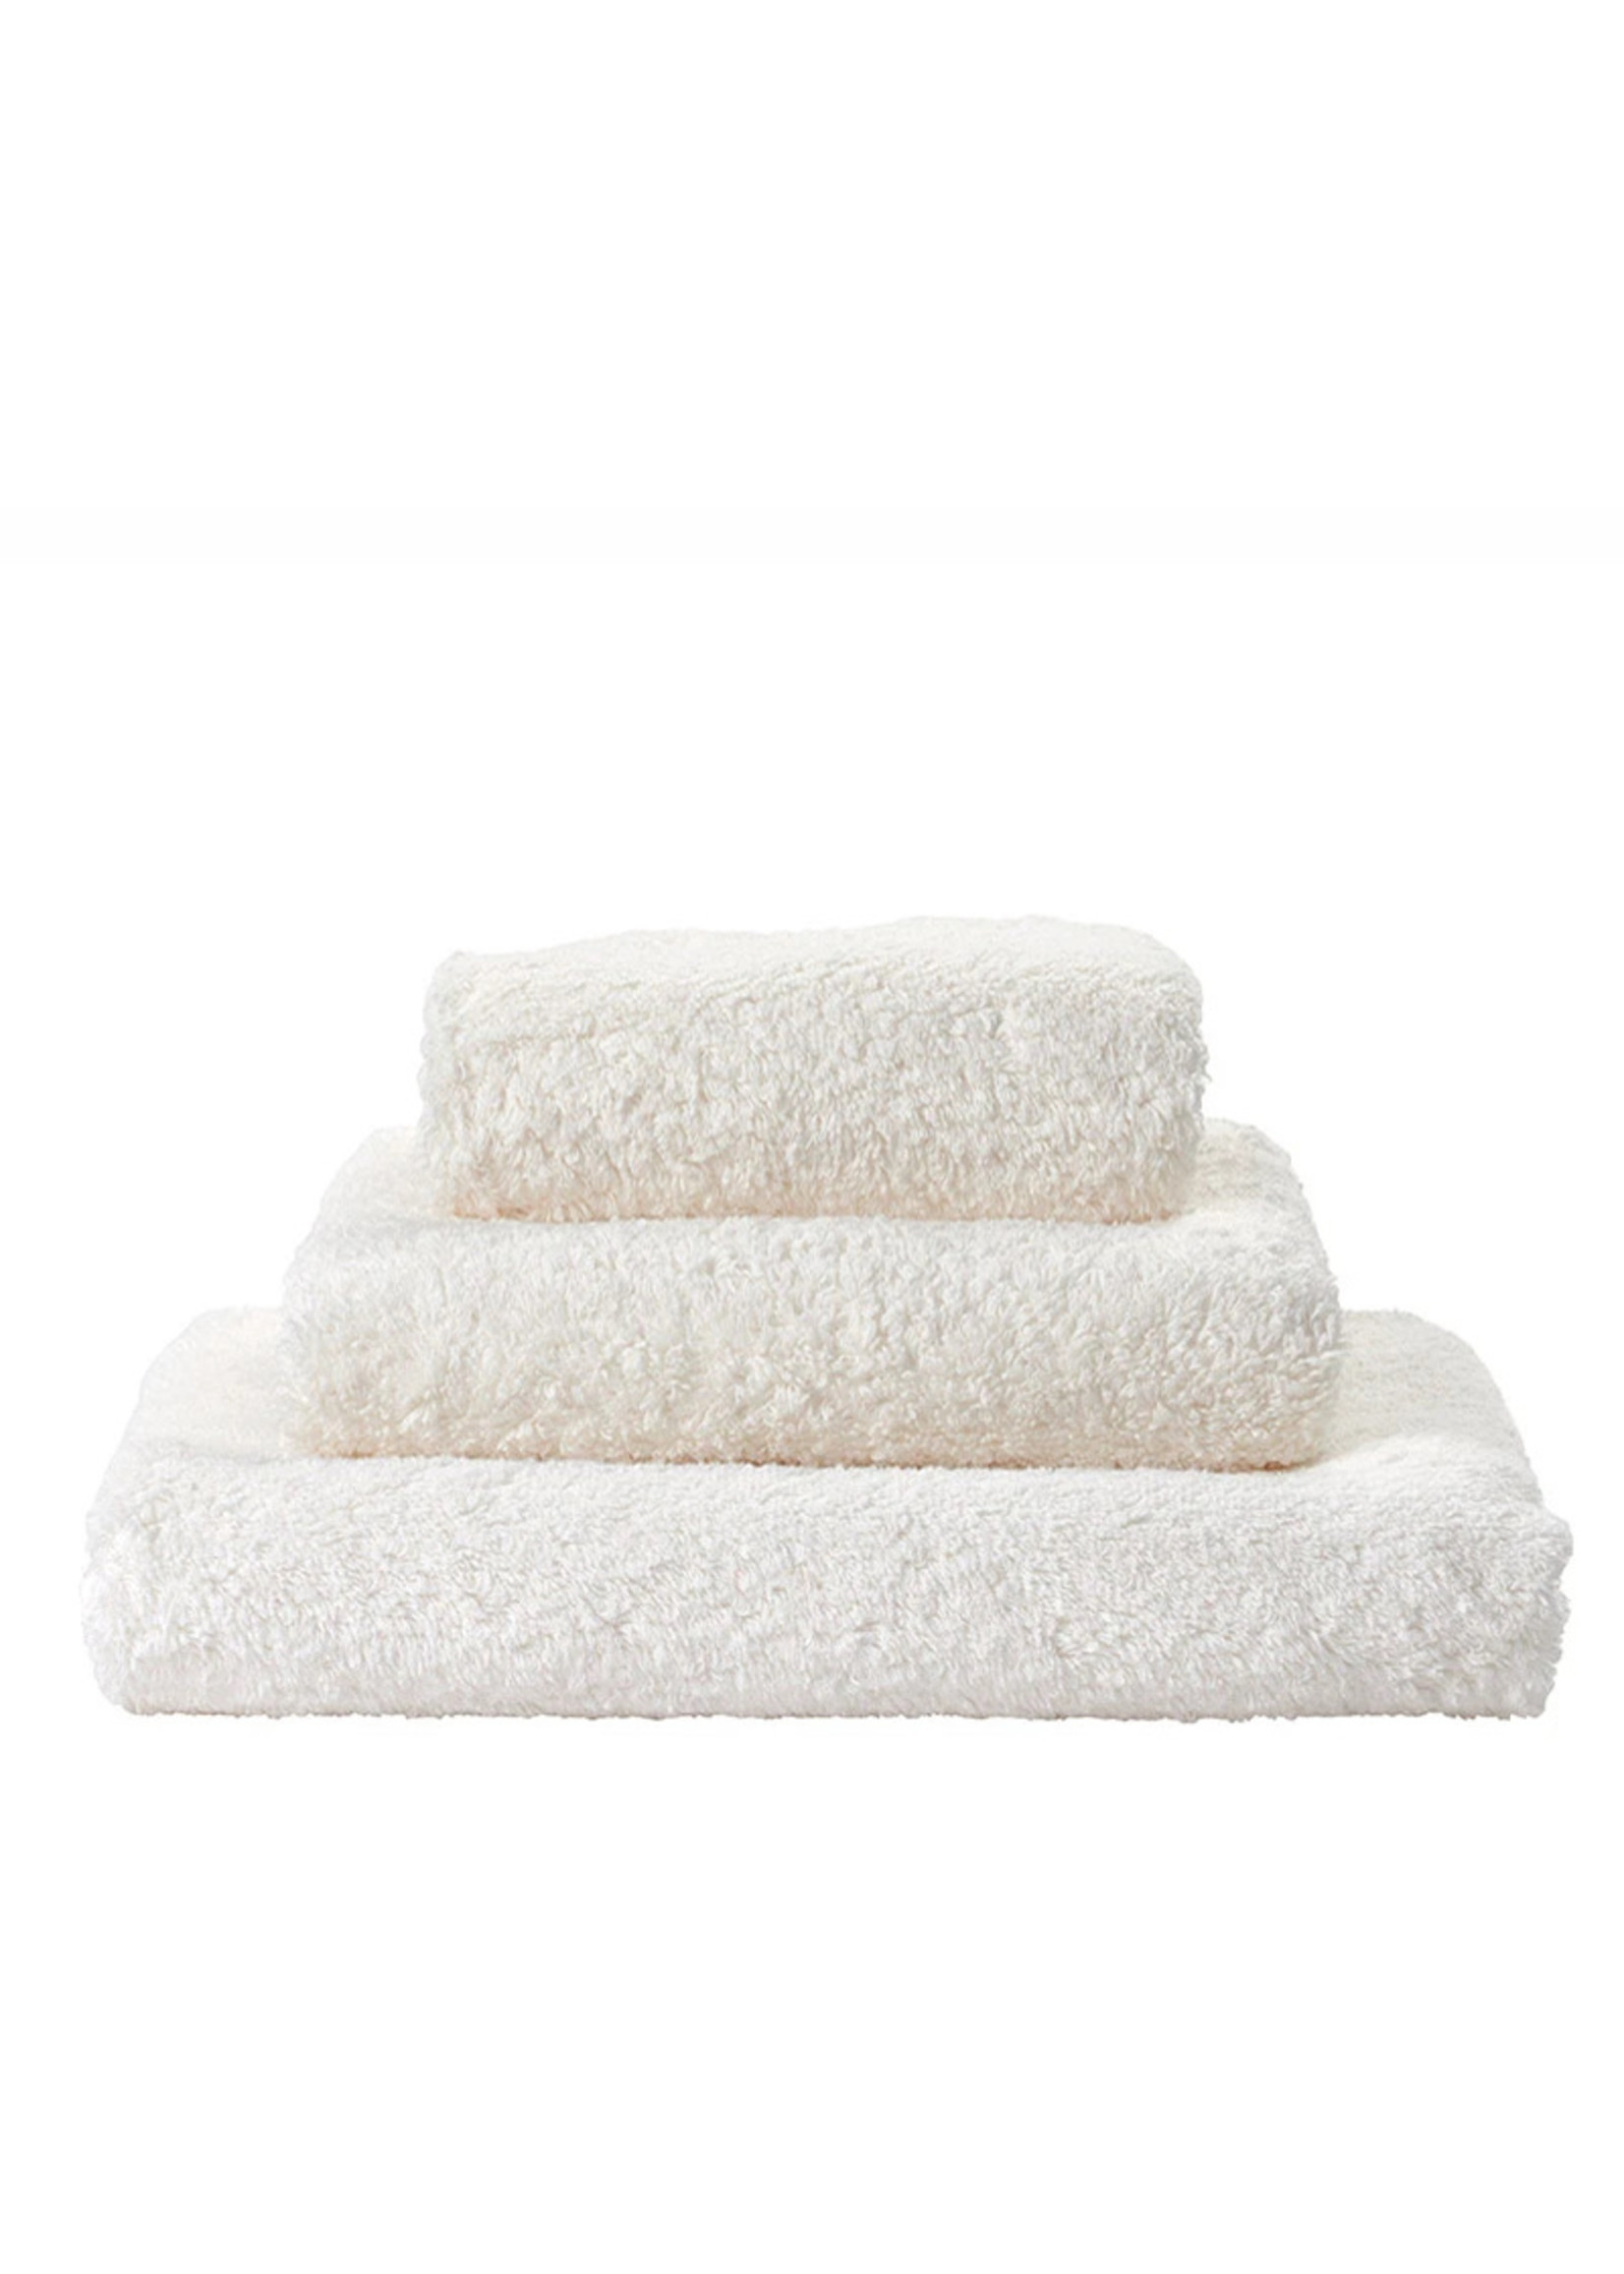 Abyss & Habidecor Super Pile Ivory Towels